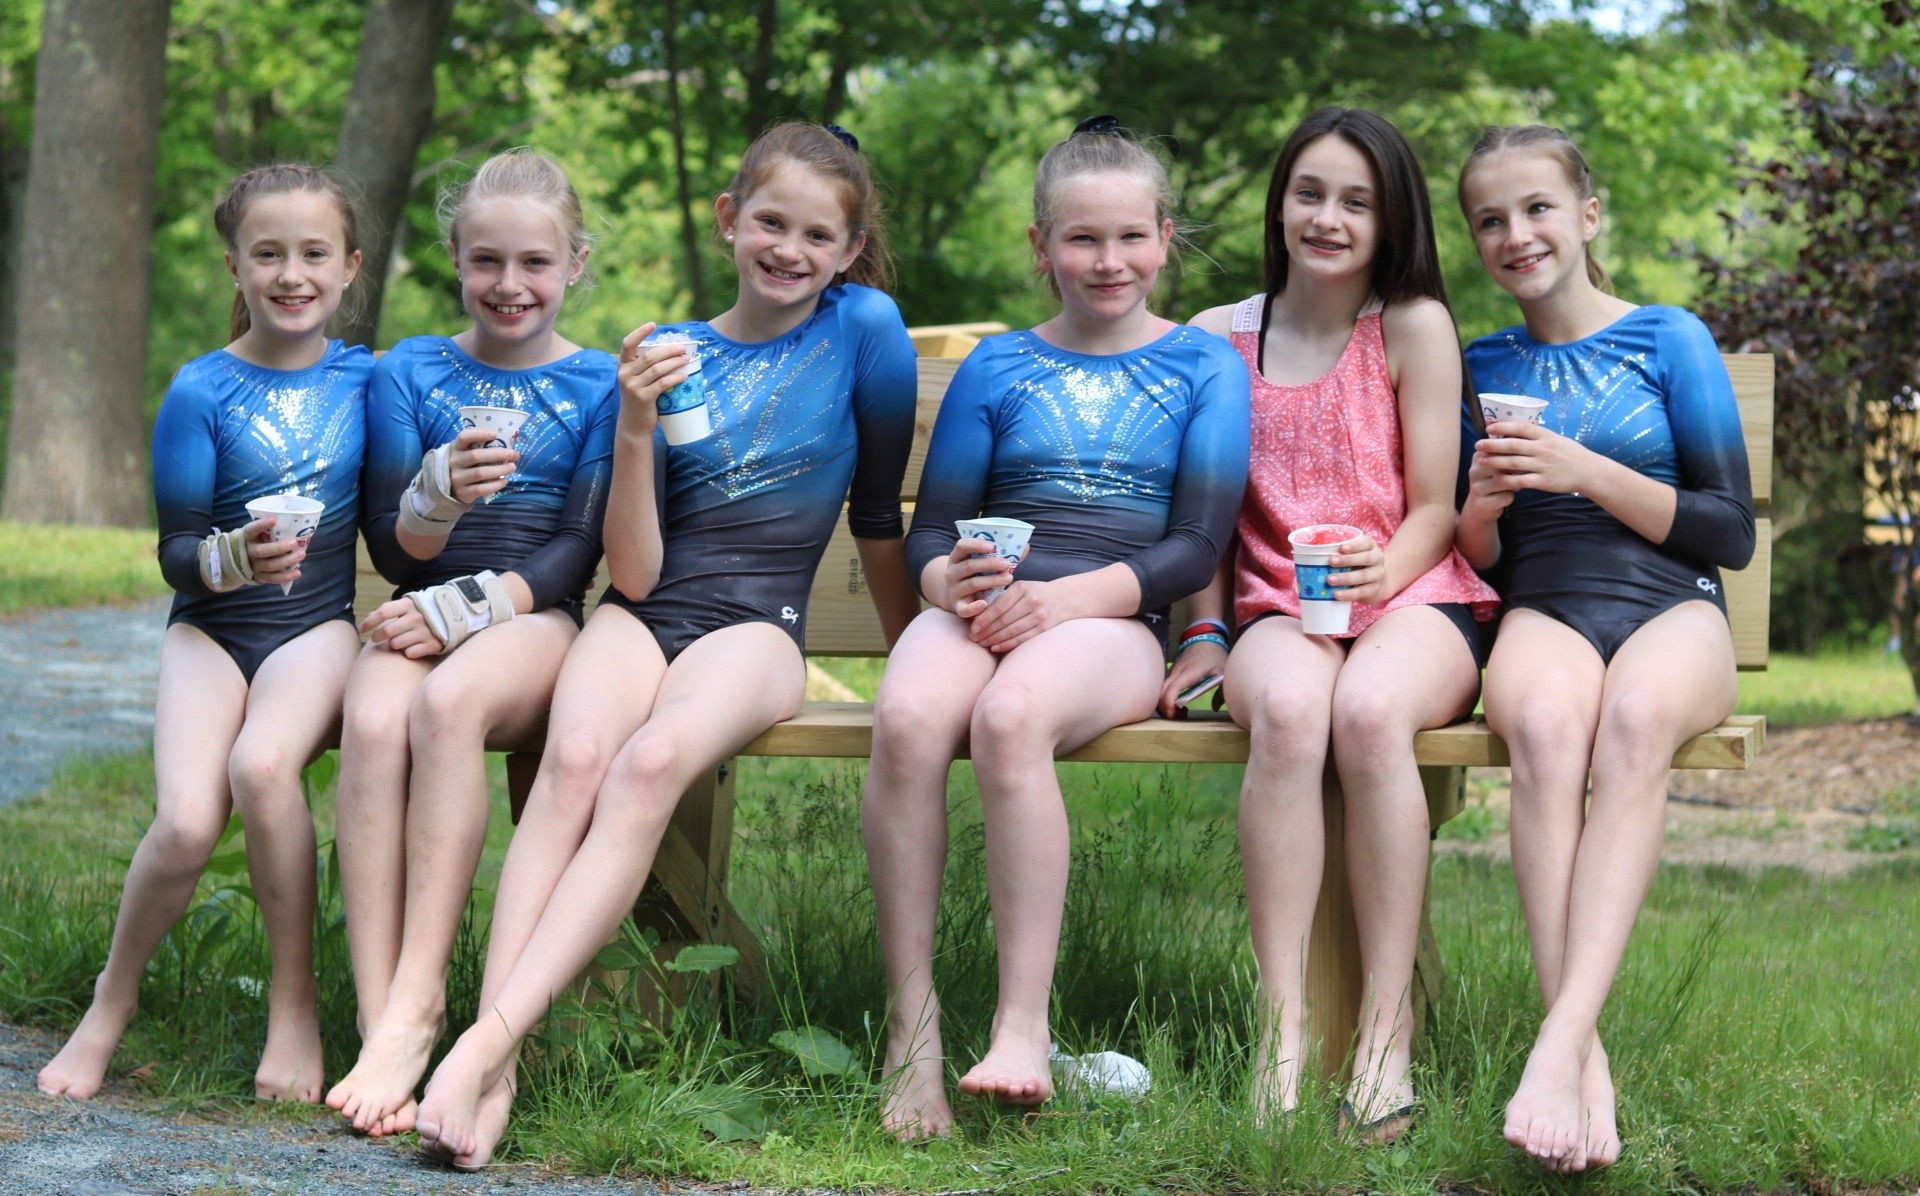 Summer girls gymnastics